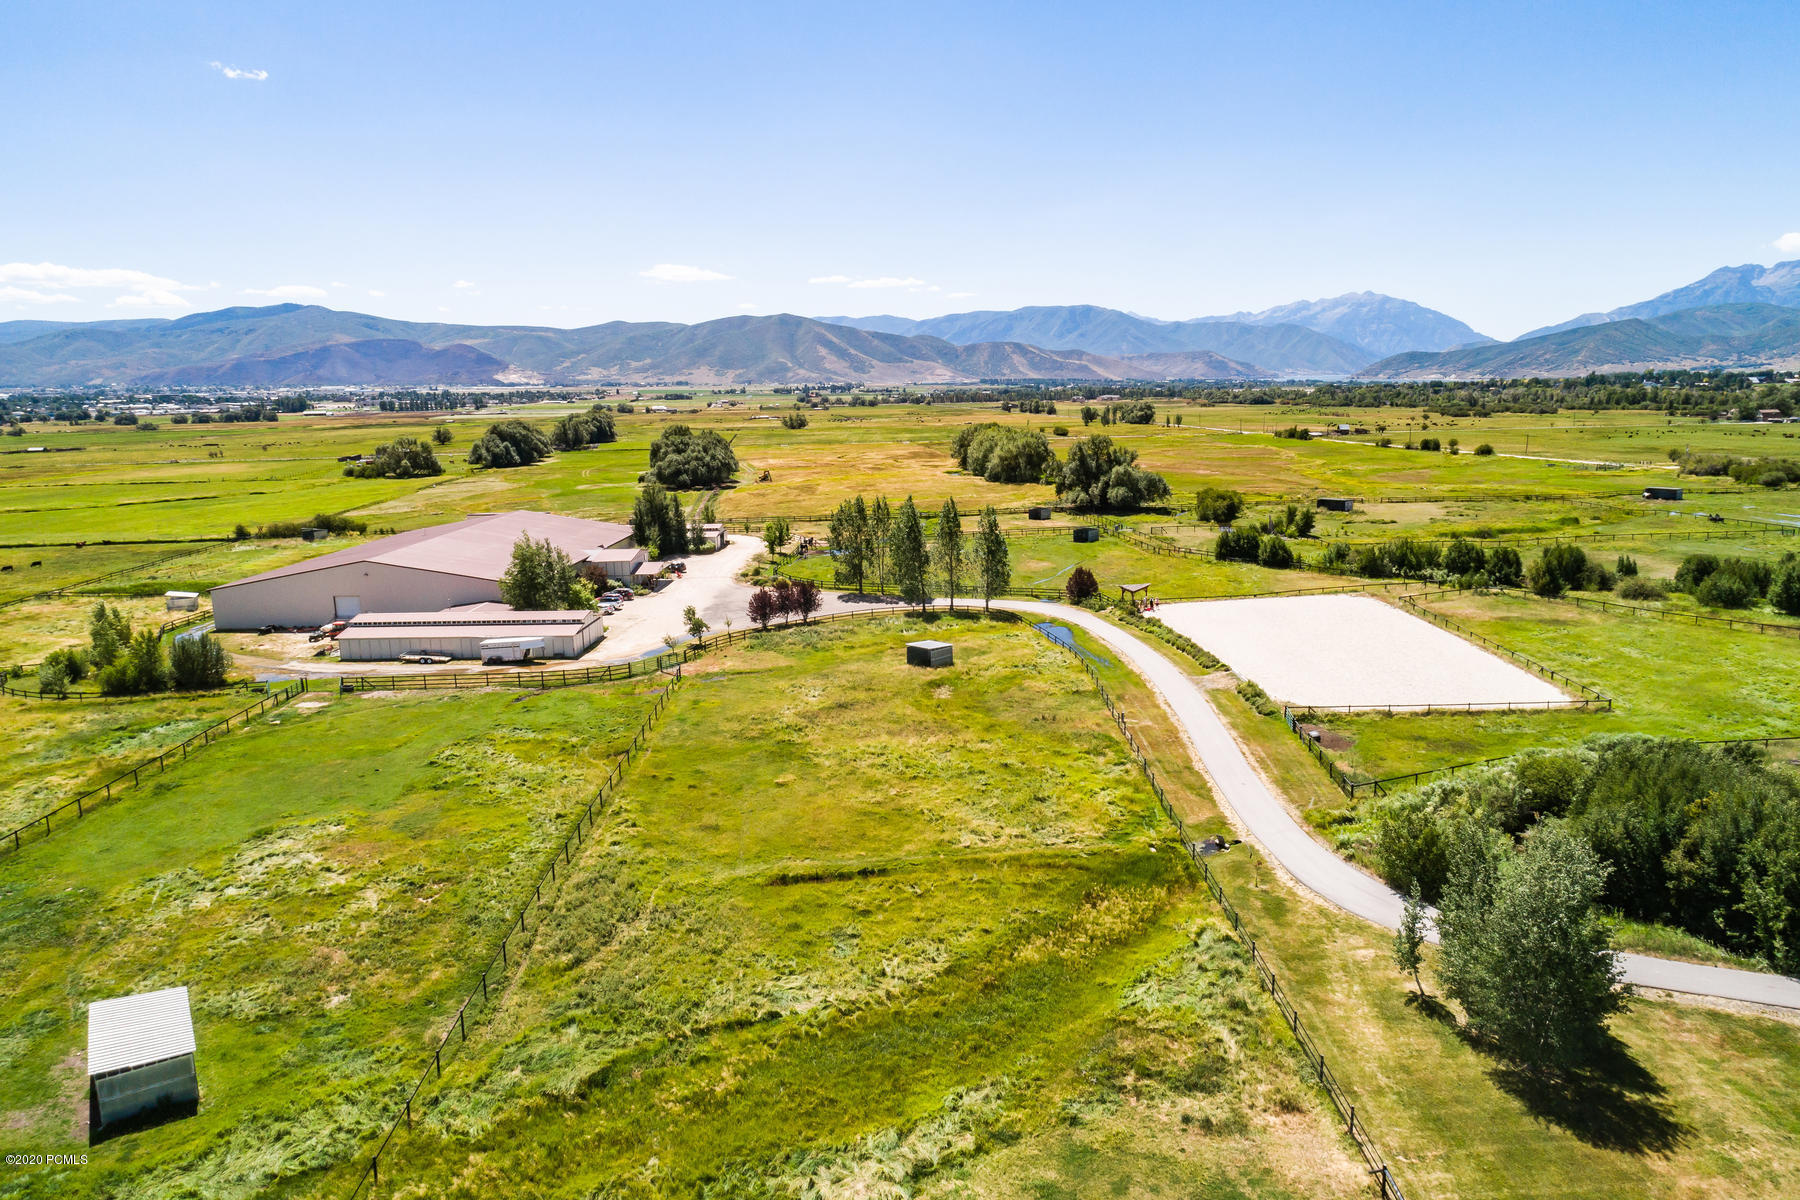 1336 1750 West, Heber City, Utah 84032, ,Land,For Sale,1750,12003023